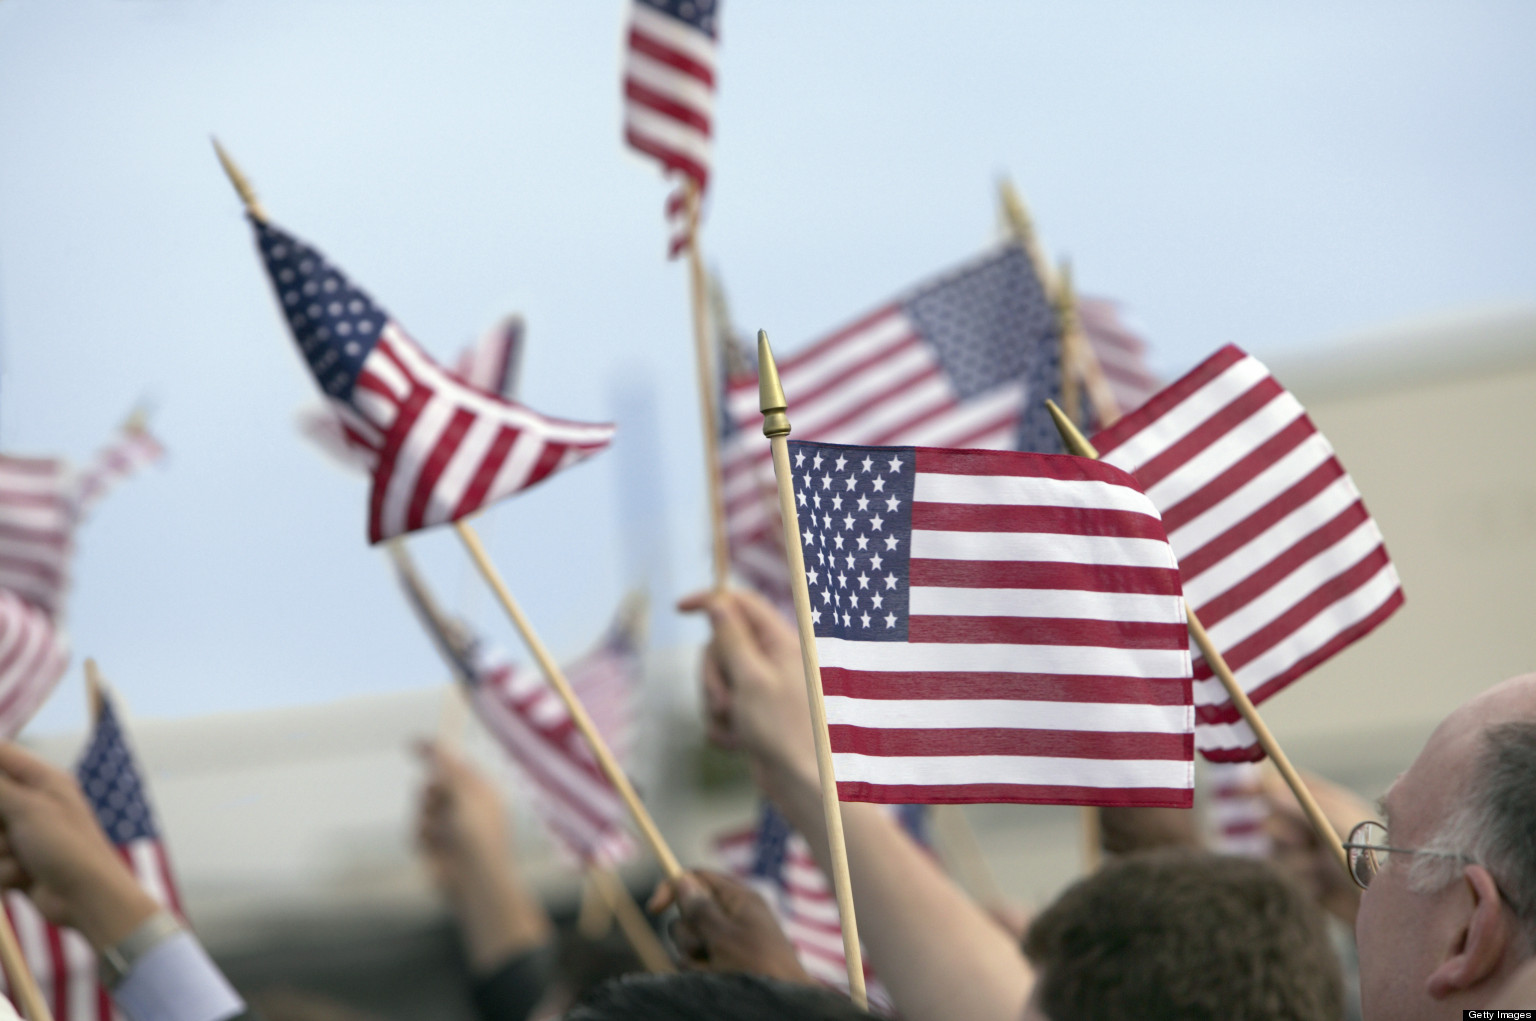 Crowd Waving Stars and Stripes Flags